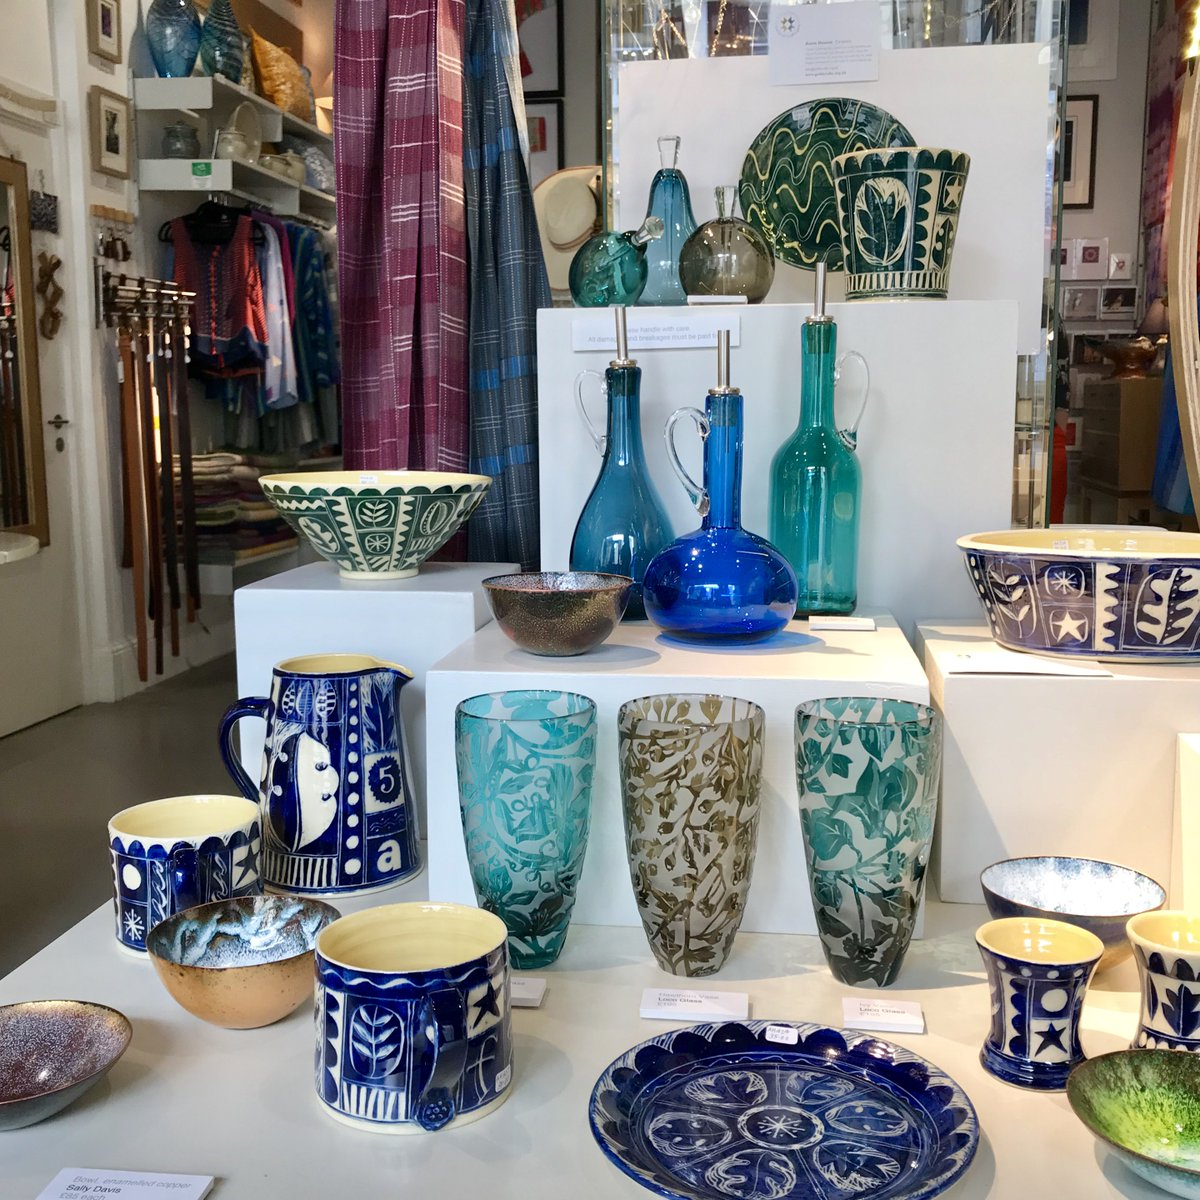 The Gloucestershire Guild of Crafts on Twitter: All the beautiful handcrafted things.   The Guild at 51 is open at 51 Clarence Street #cheltenham.  #shopping #homewares #interiors #lifestylestore #guildat51 #makers #craft #makersgonnamake #supporthandmade…